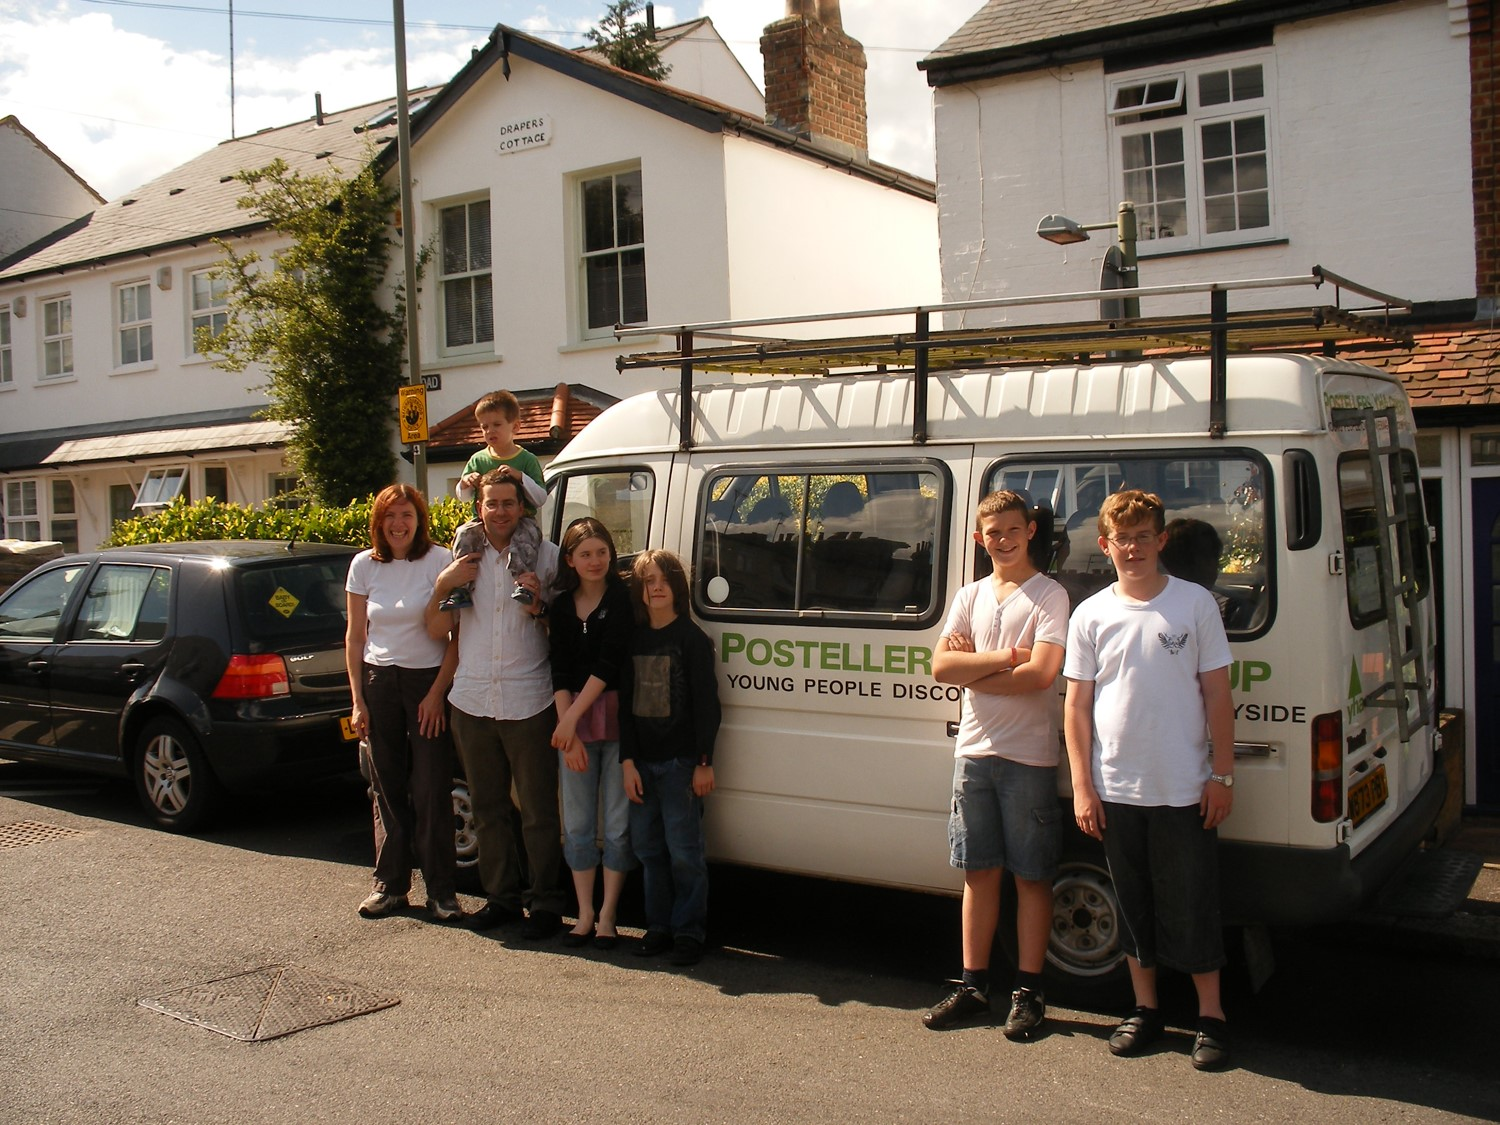 Some of the Postellers YHA Group posing after cleaning the Posteller minibus